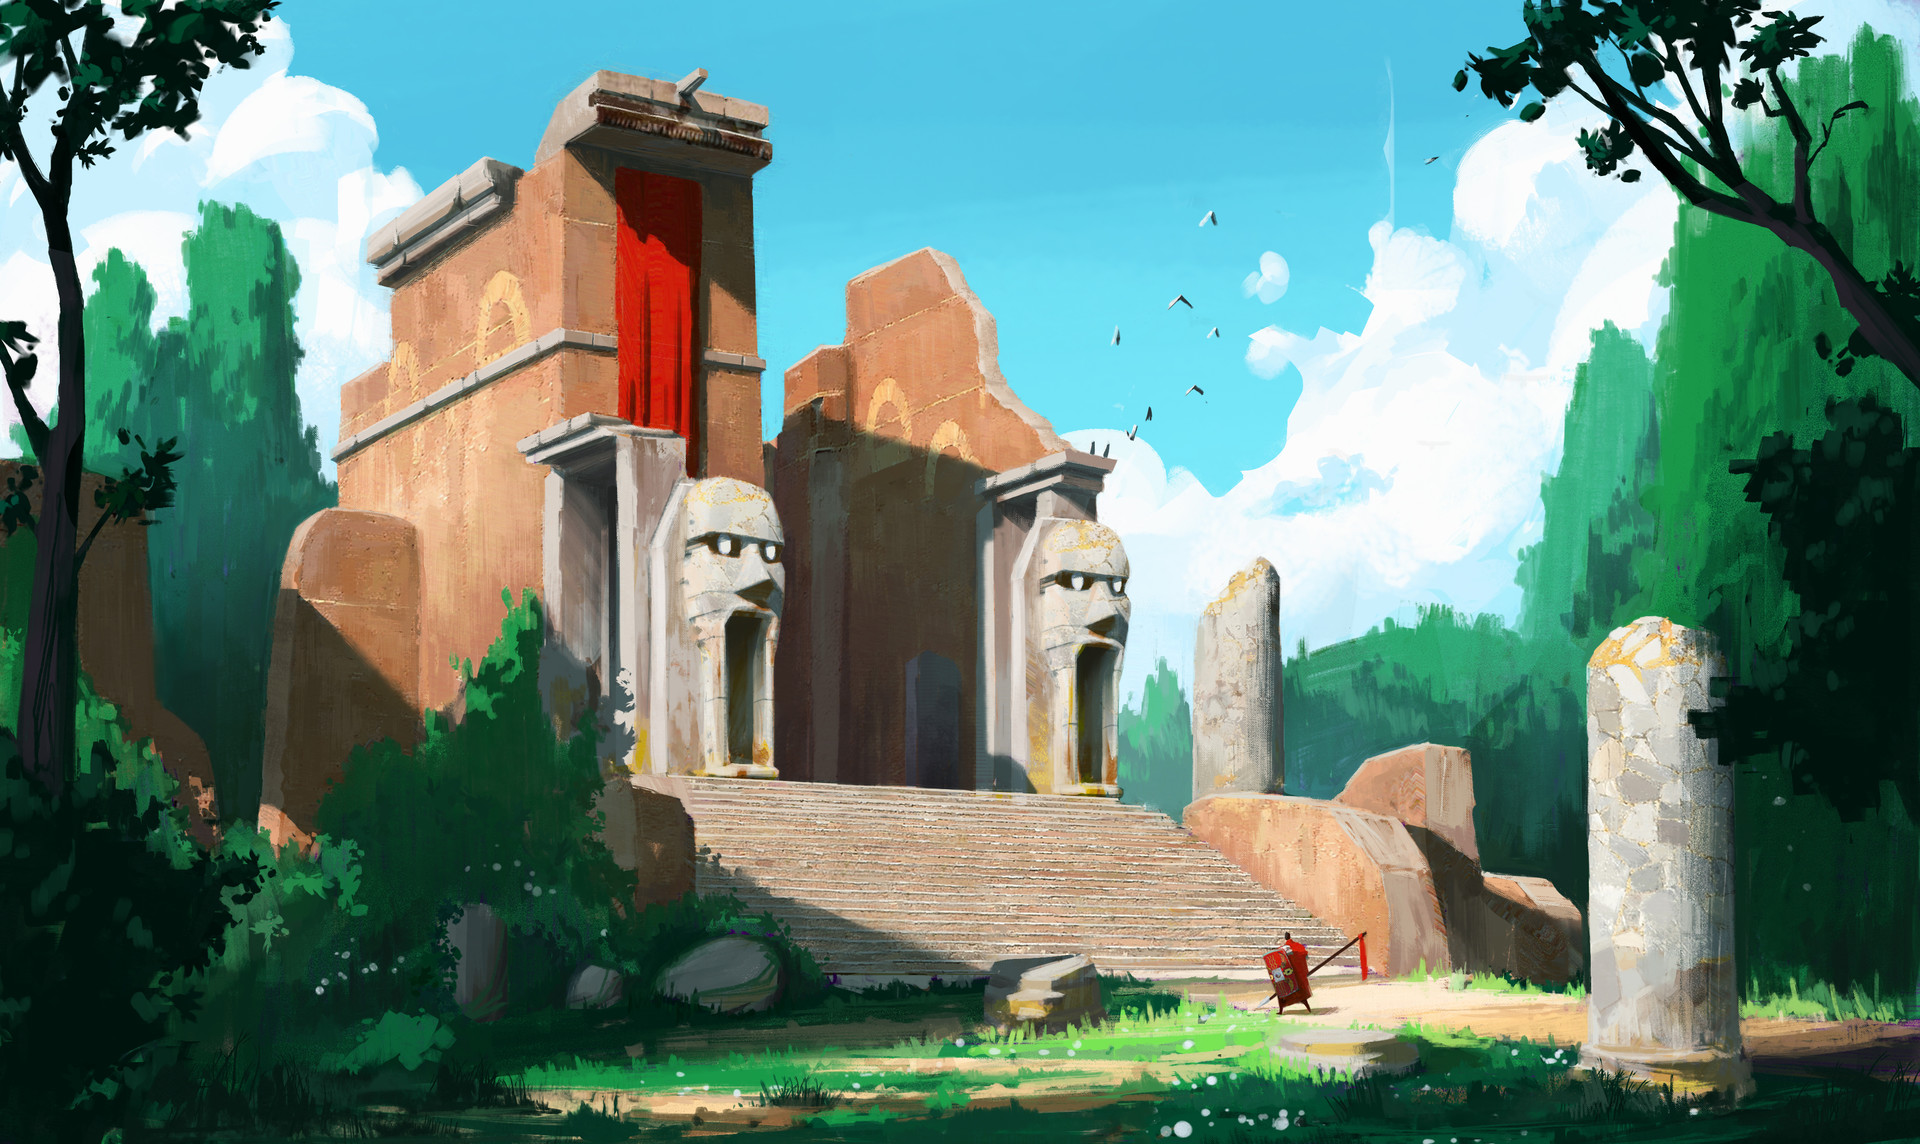 Arriving at the Temple of Faces